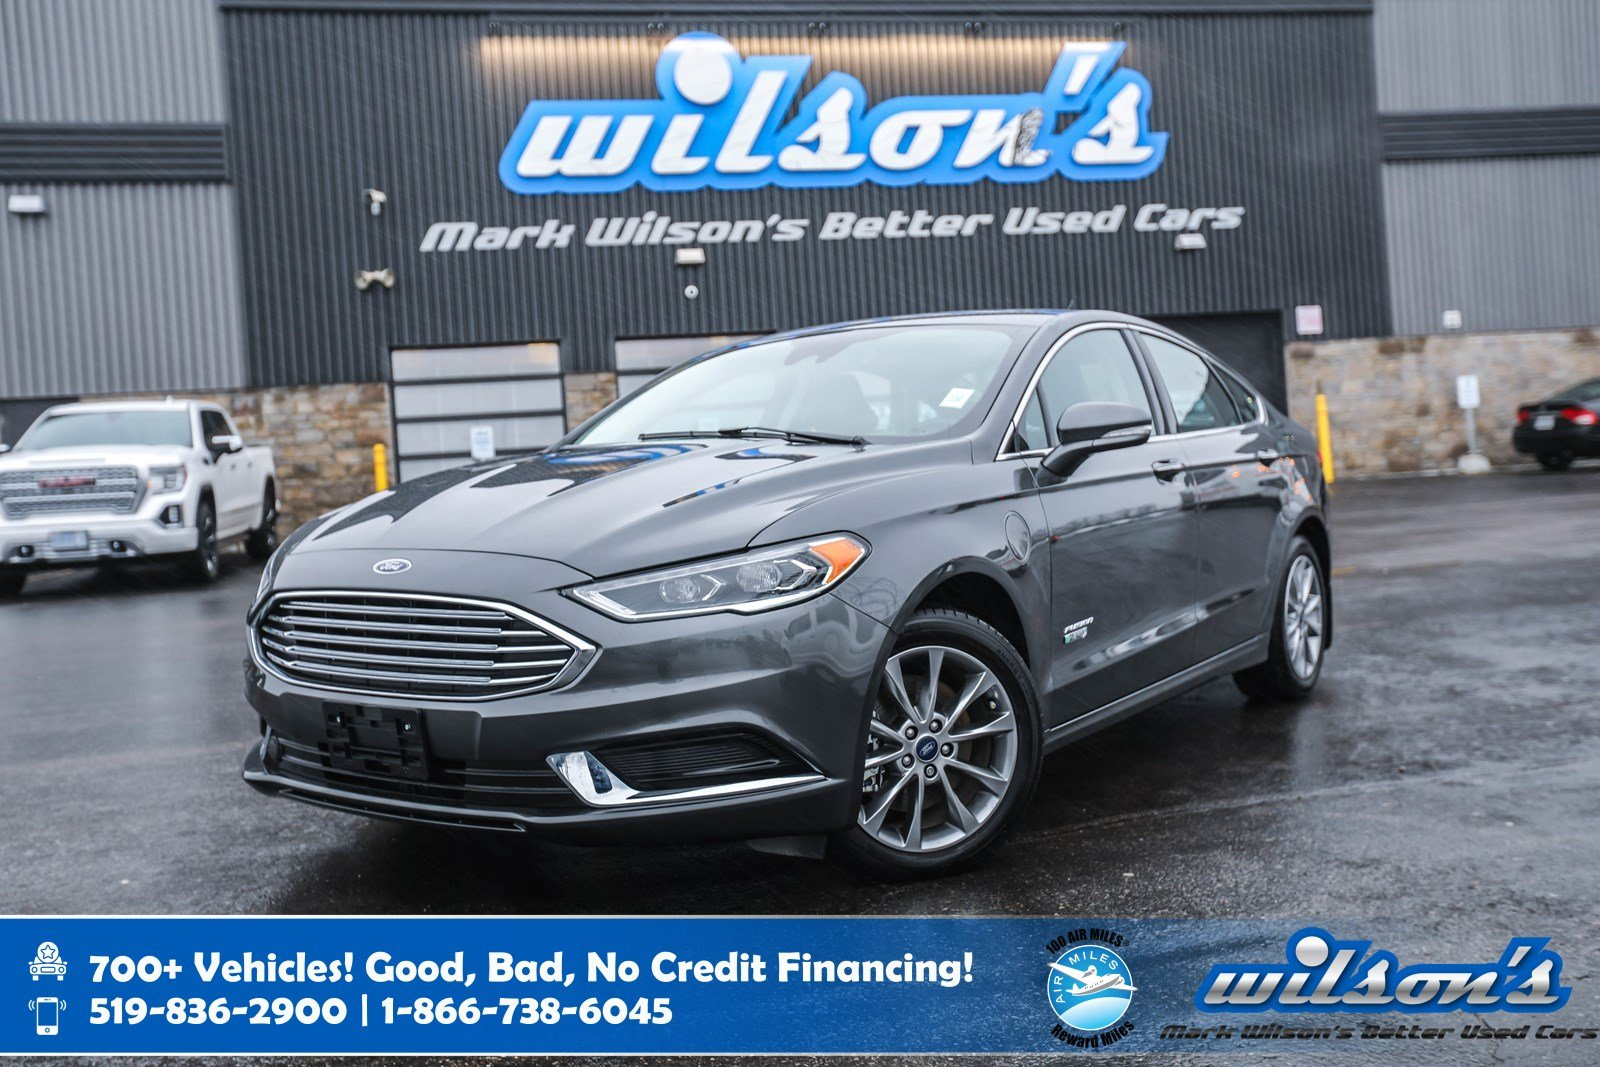 Certified Pre-Owned 2018 Ford Fusion Energi SE Luxury, Leather, Navigation, Heated Steering + Seats, Remote Start and more!